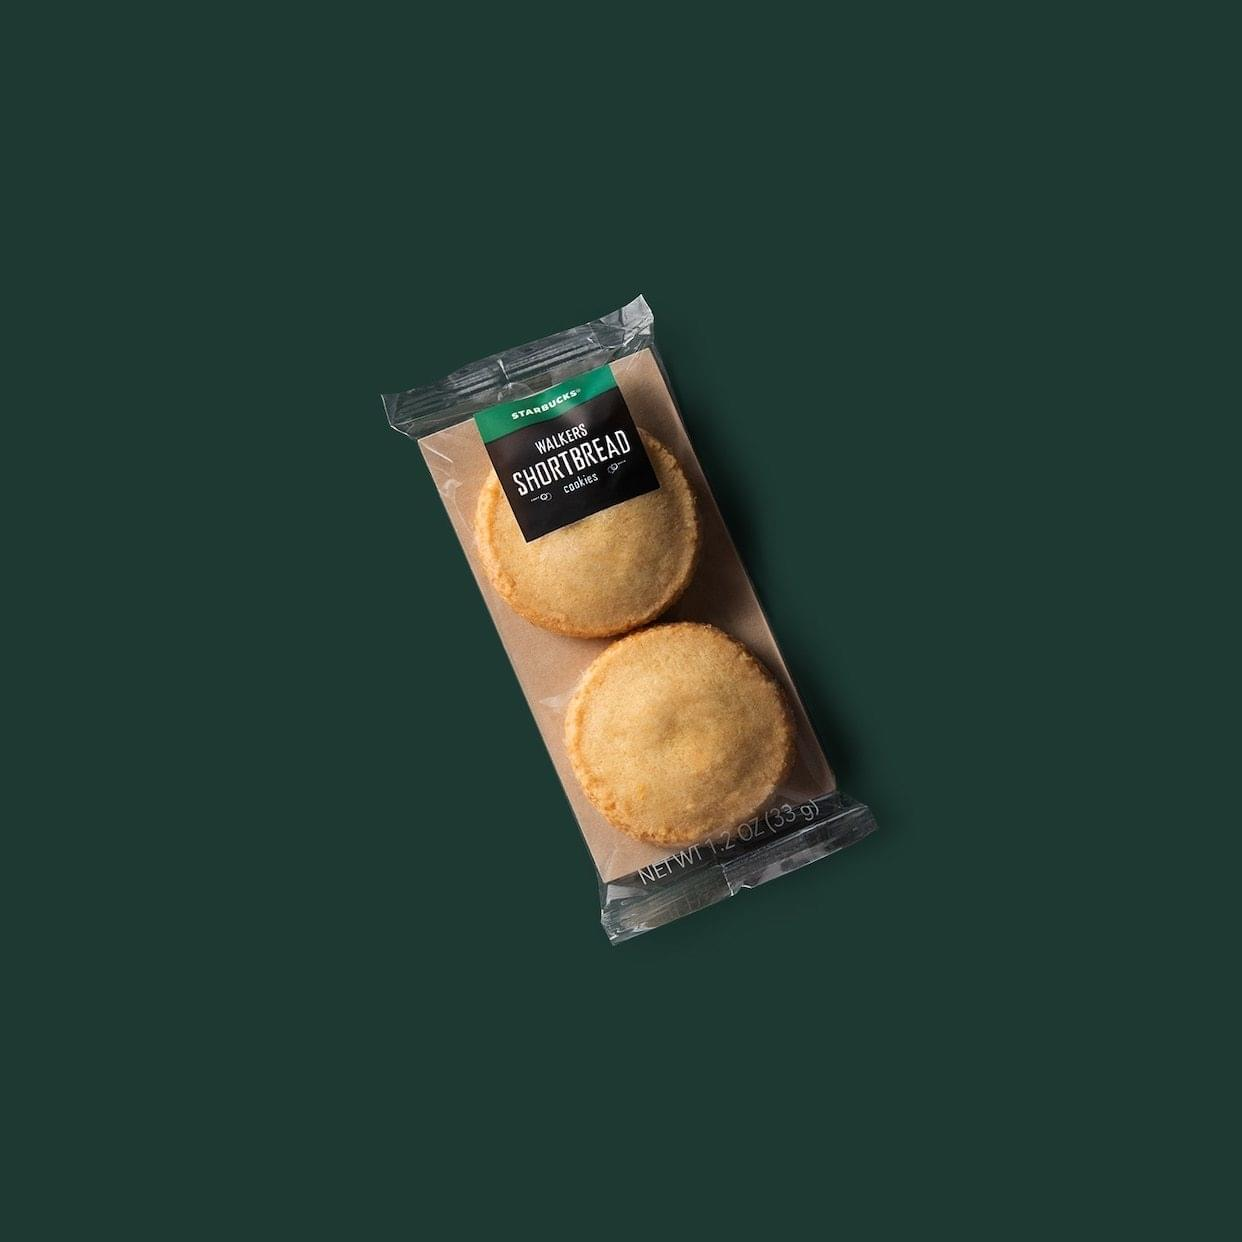 Starbucks Shortbread Cookies Nutrition Facts